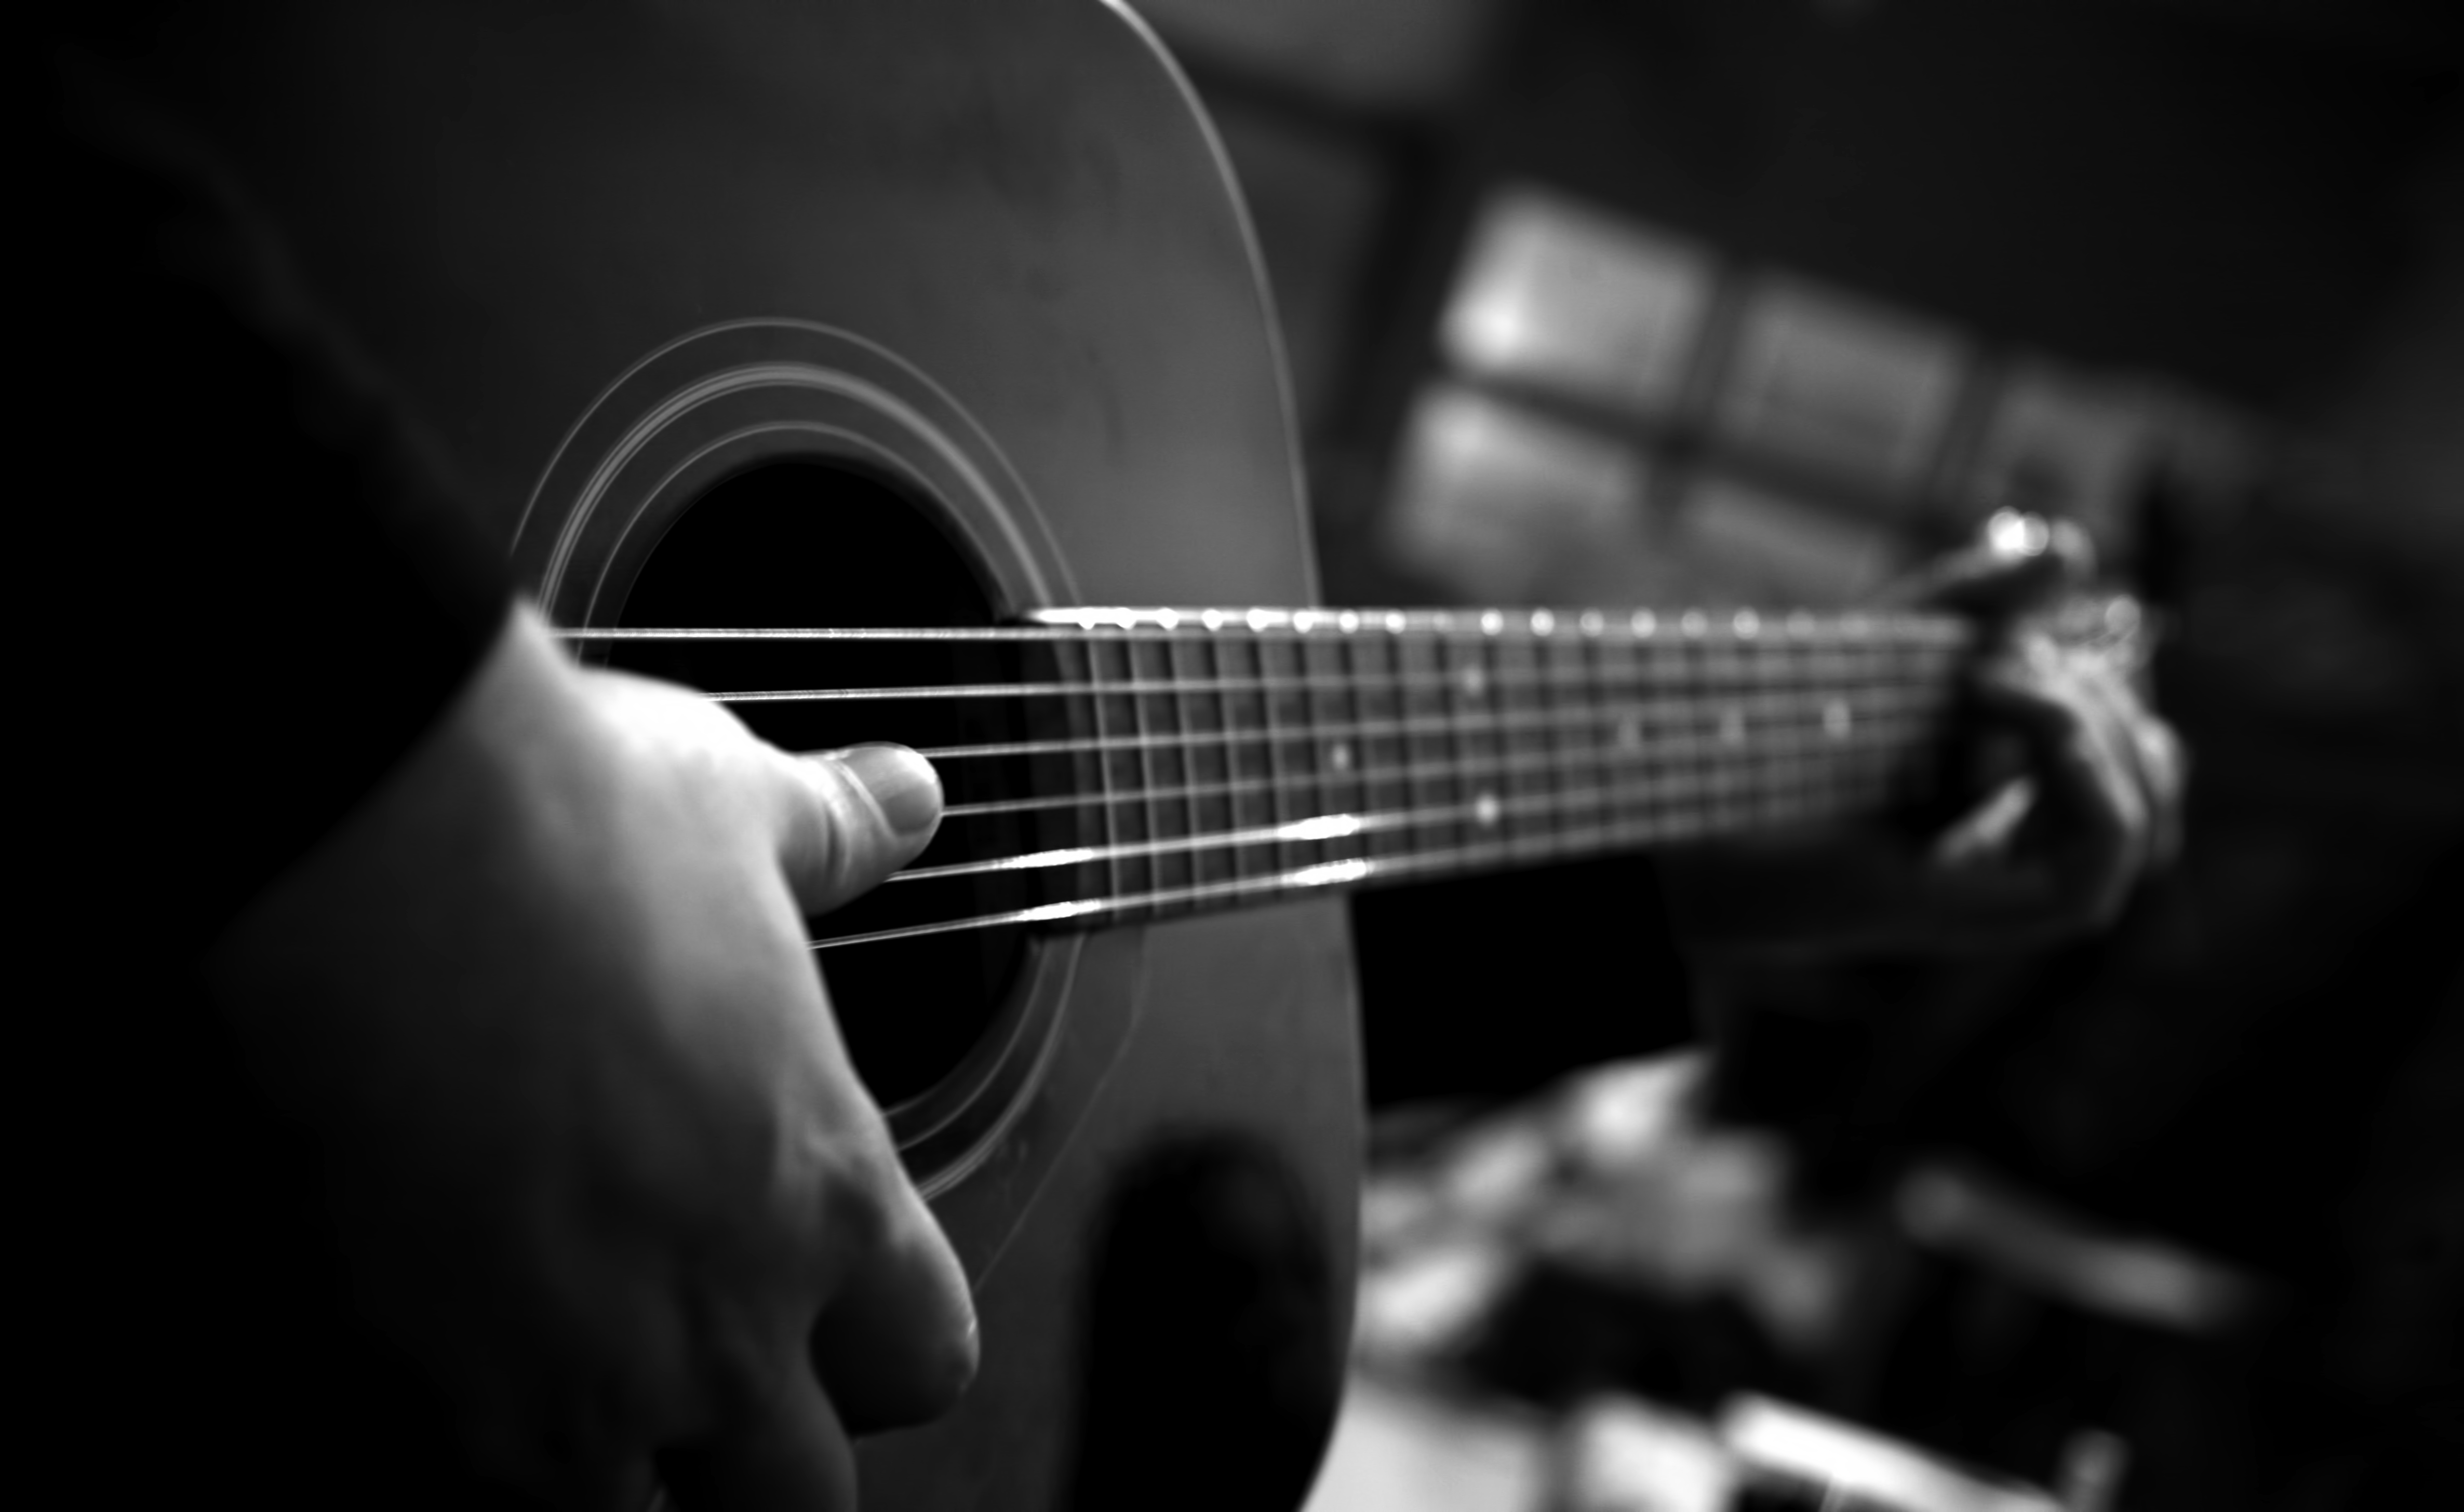 Guitar Wallpaper Black and White wallpaper wallpaper hd background 4744x2912